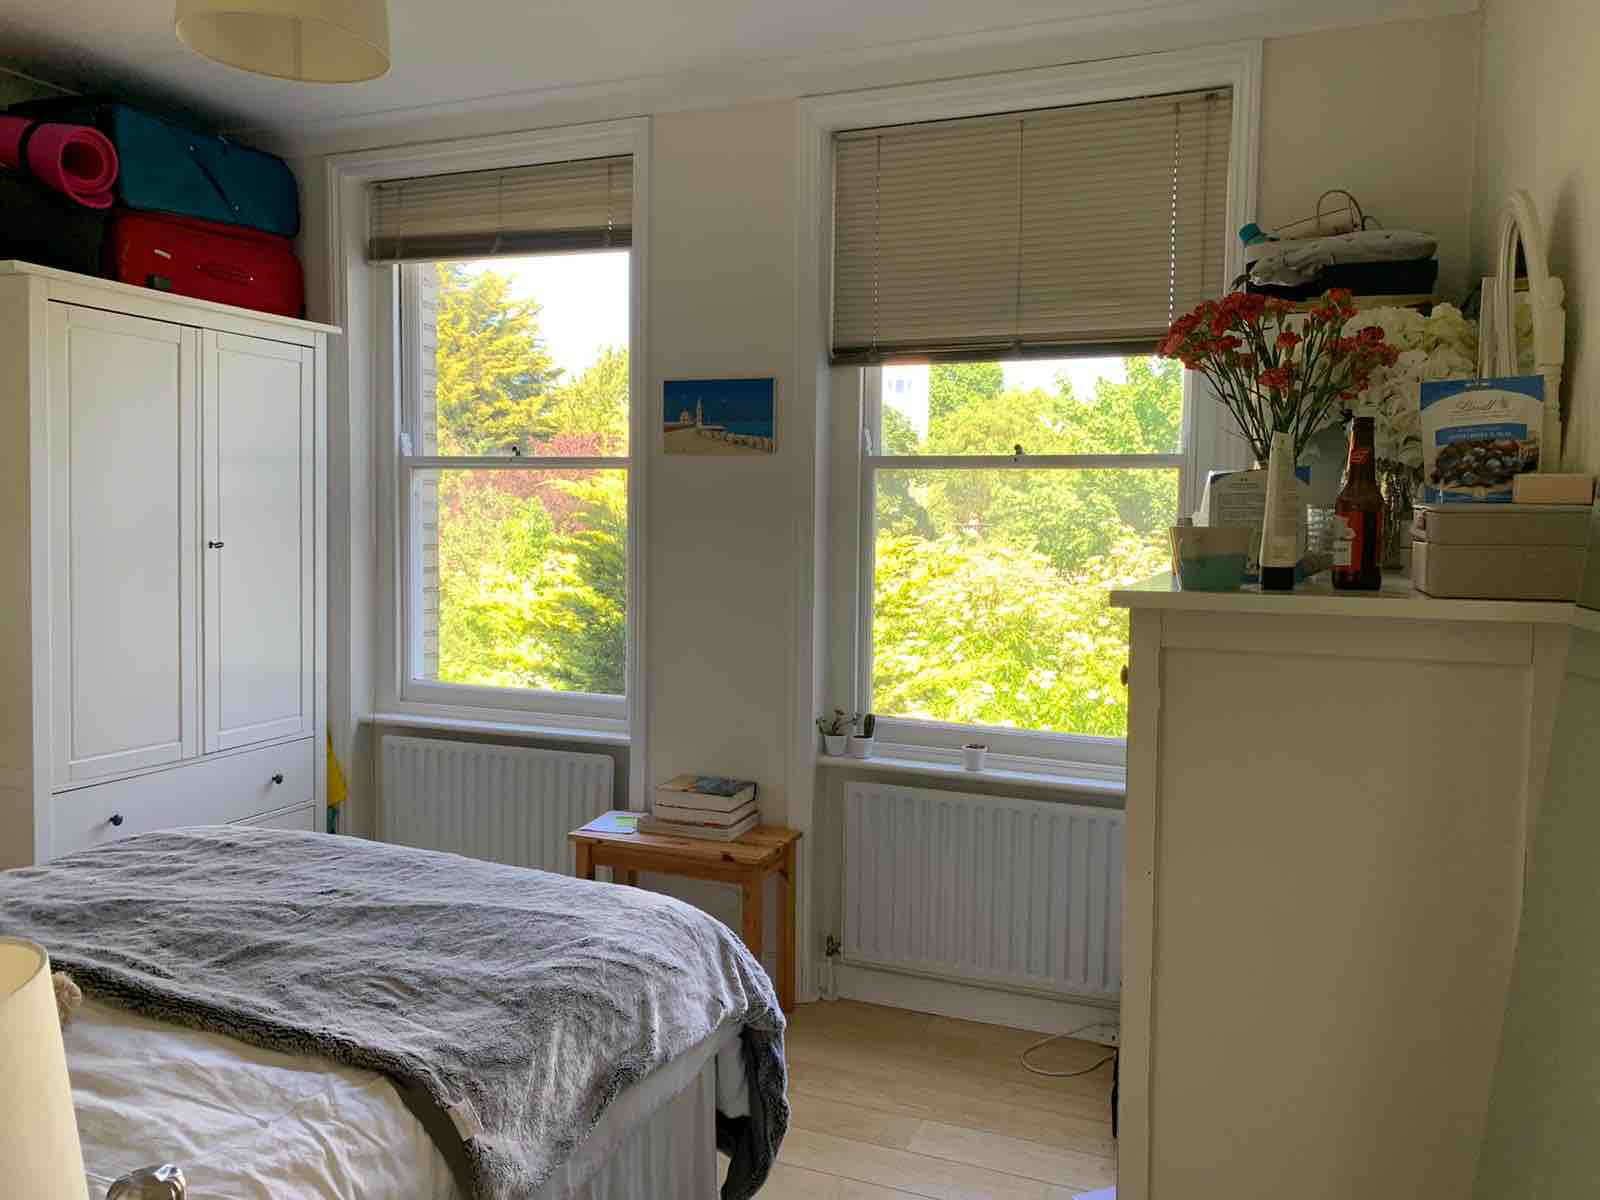 1 room in Fortune Green, London, NW23UG RoomsLocal image